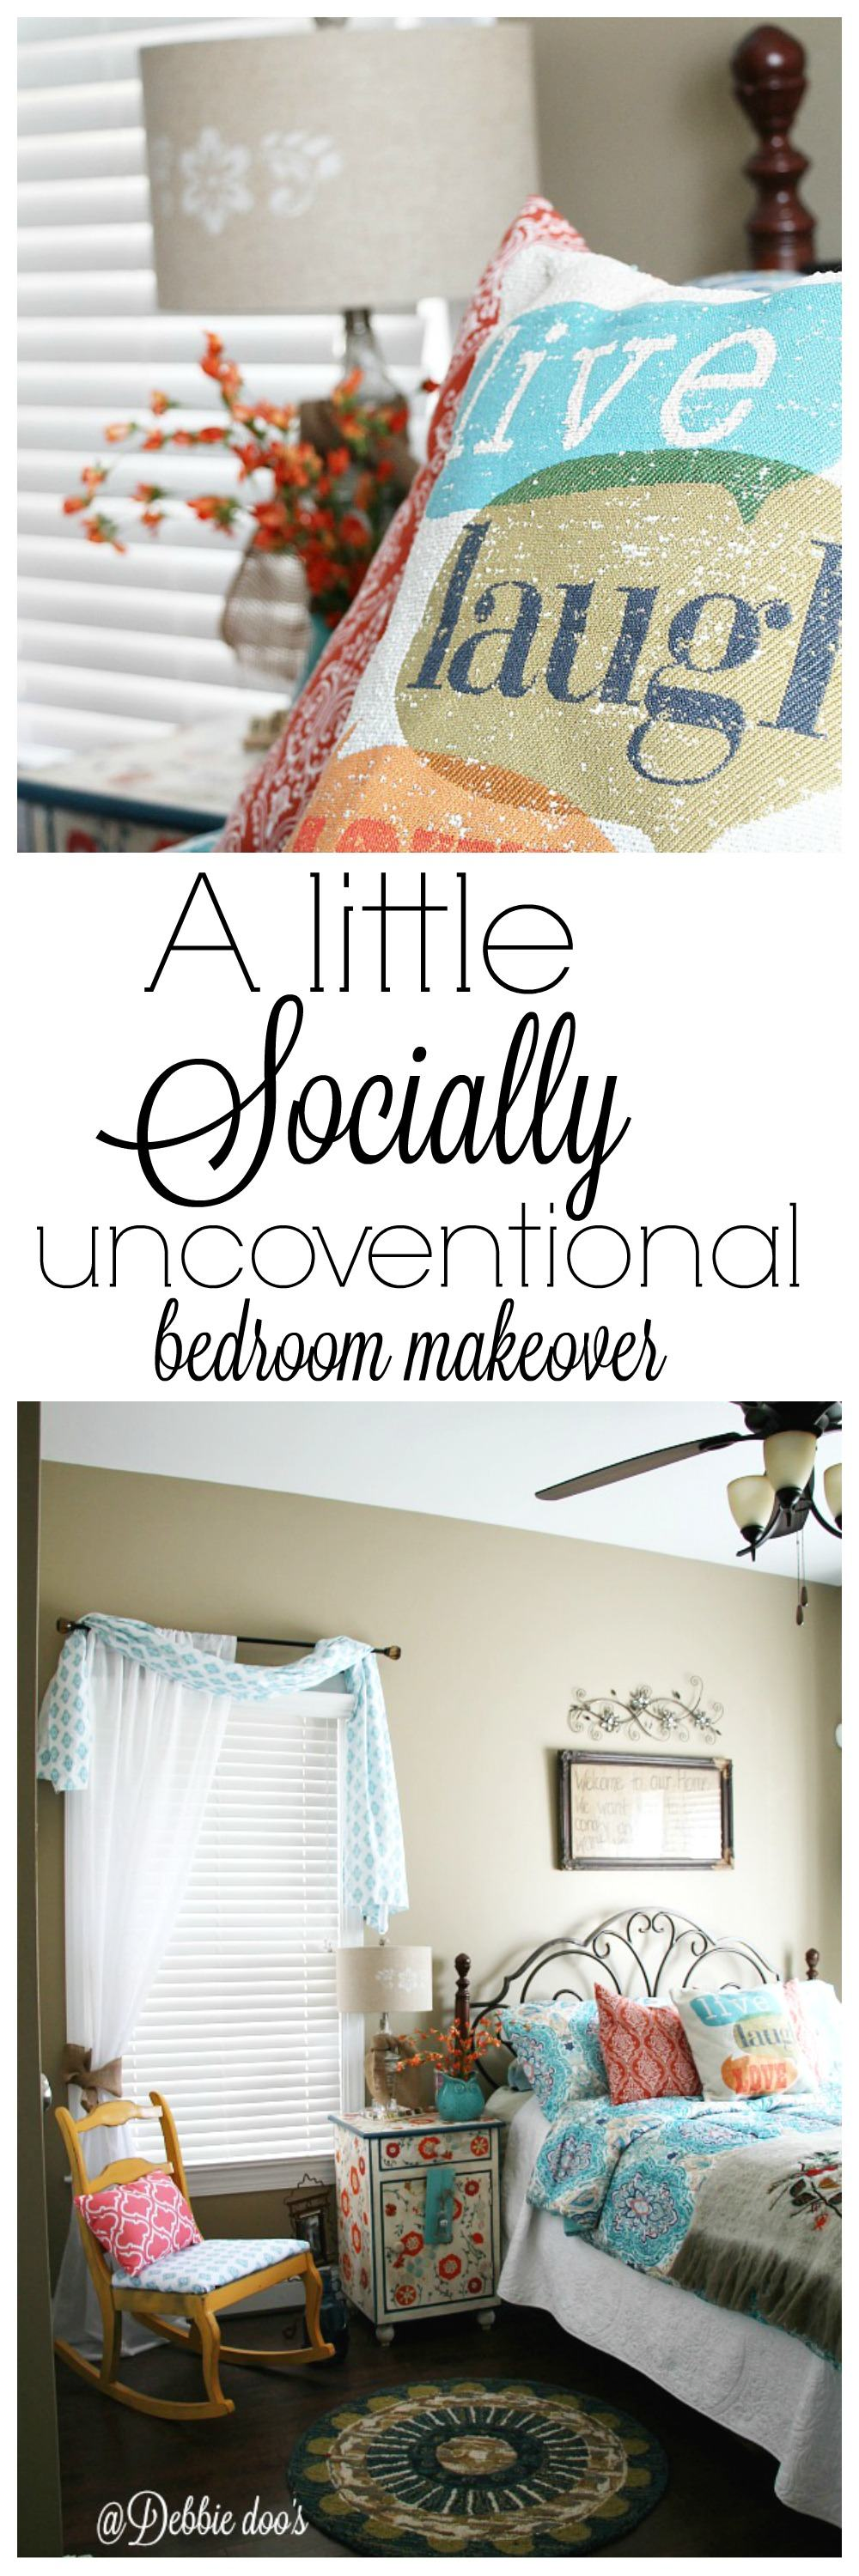 Perfect A little socially unconventional bedroom makever for under including curtains pillows and recovering a